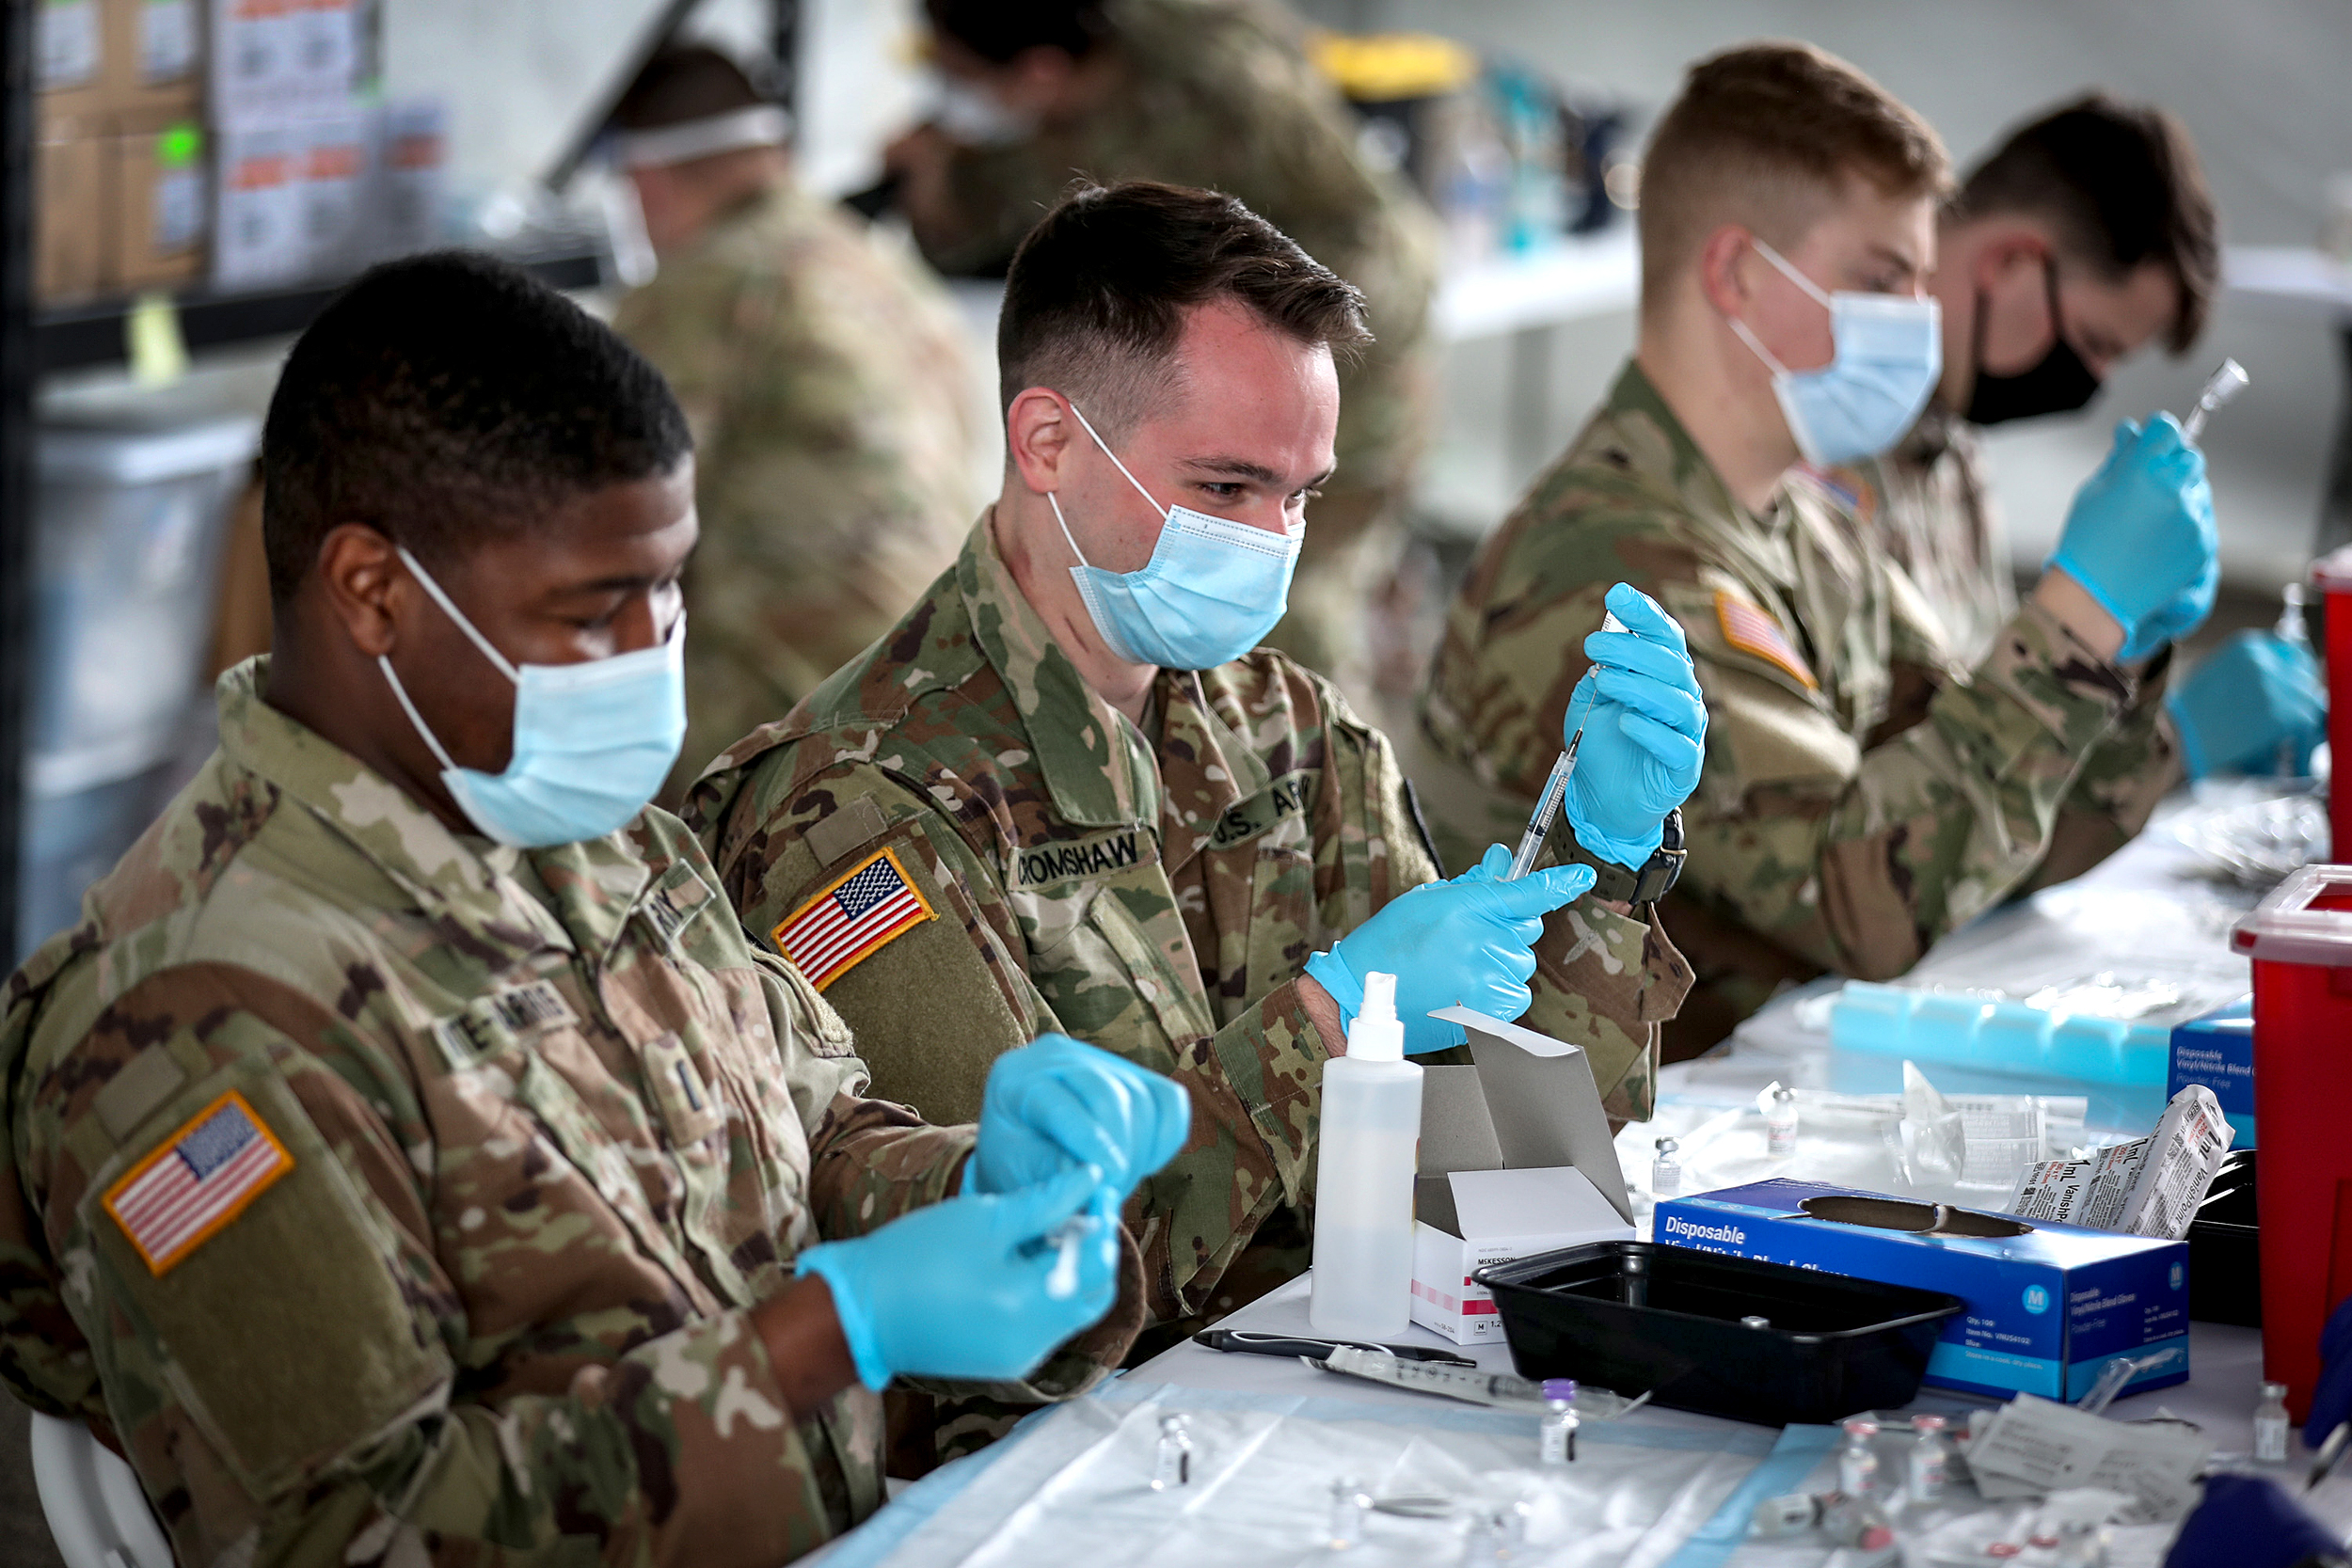 Pentagon will require Covid vaccines for members of the military by mid-September